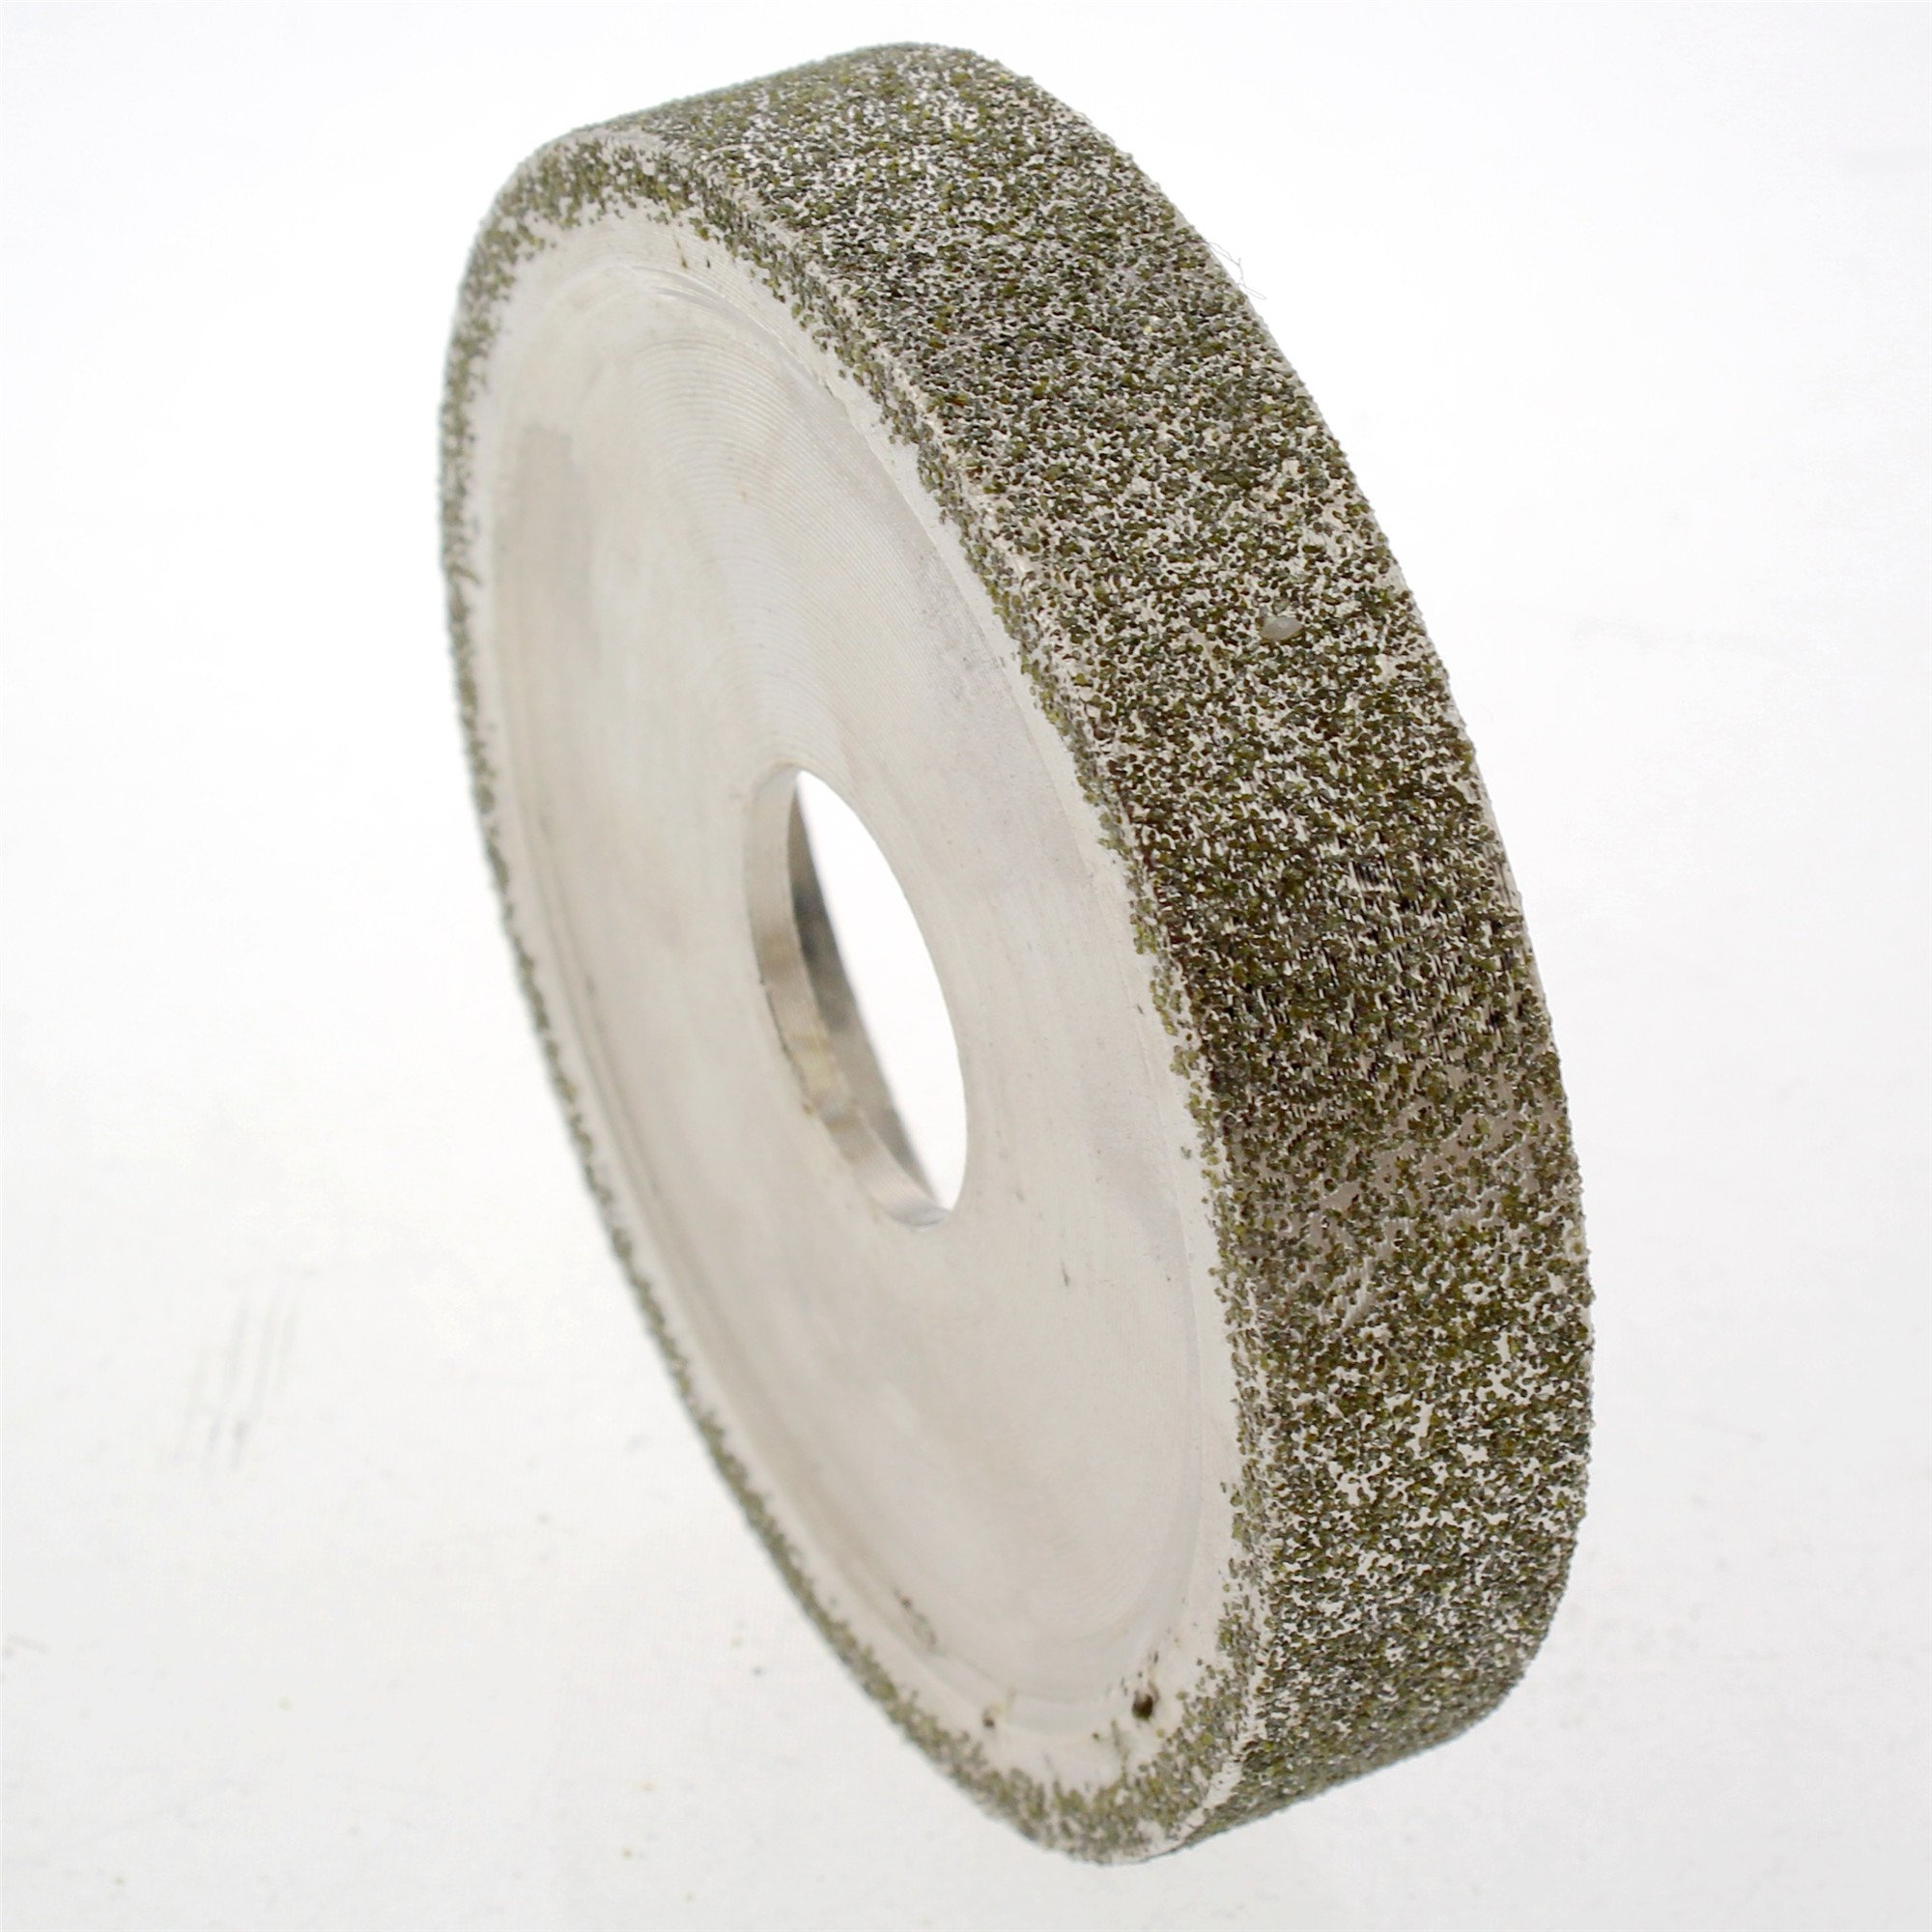 ILOVETOOL 3'' inch 15mm Lapidary Electroplated Diamond Grinding Wheel for Angle Grinder Grit 80